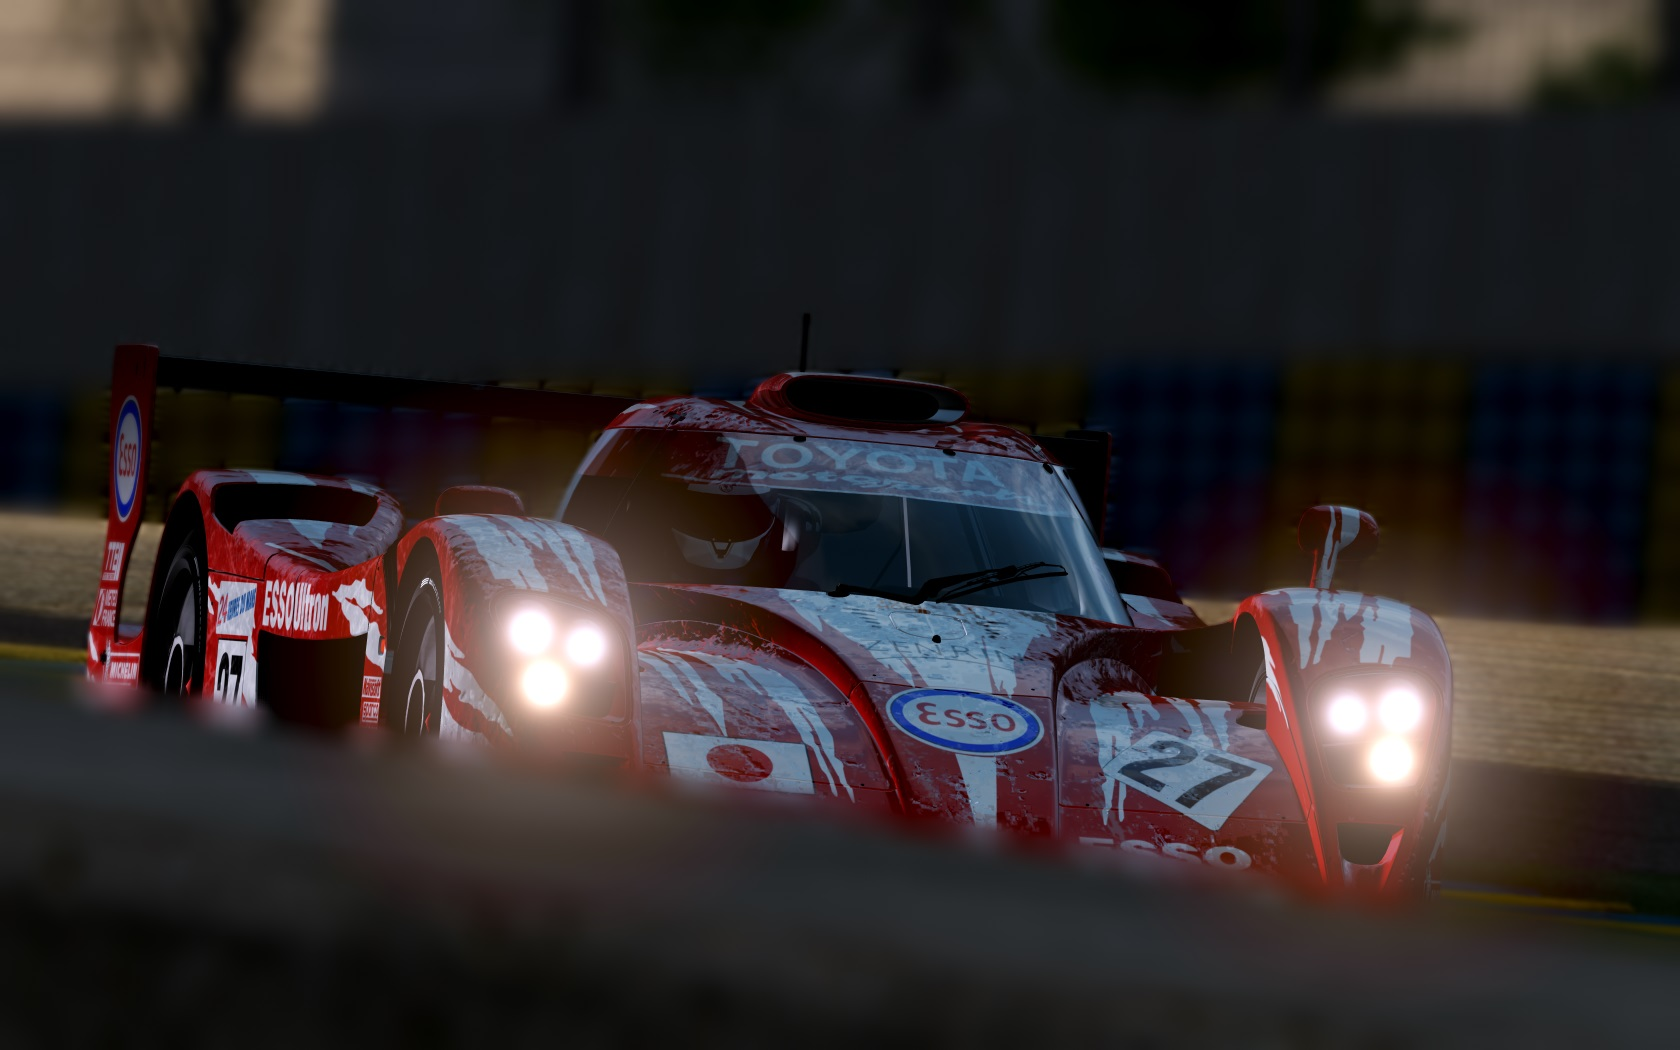 Screenshot_toyota_gt_one_ts020_lemans_2017_26-11-118-20-37-35.jpg